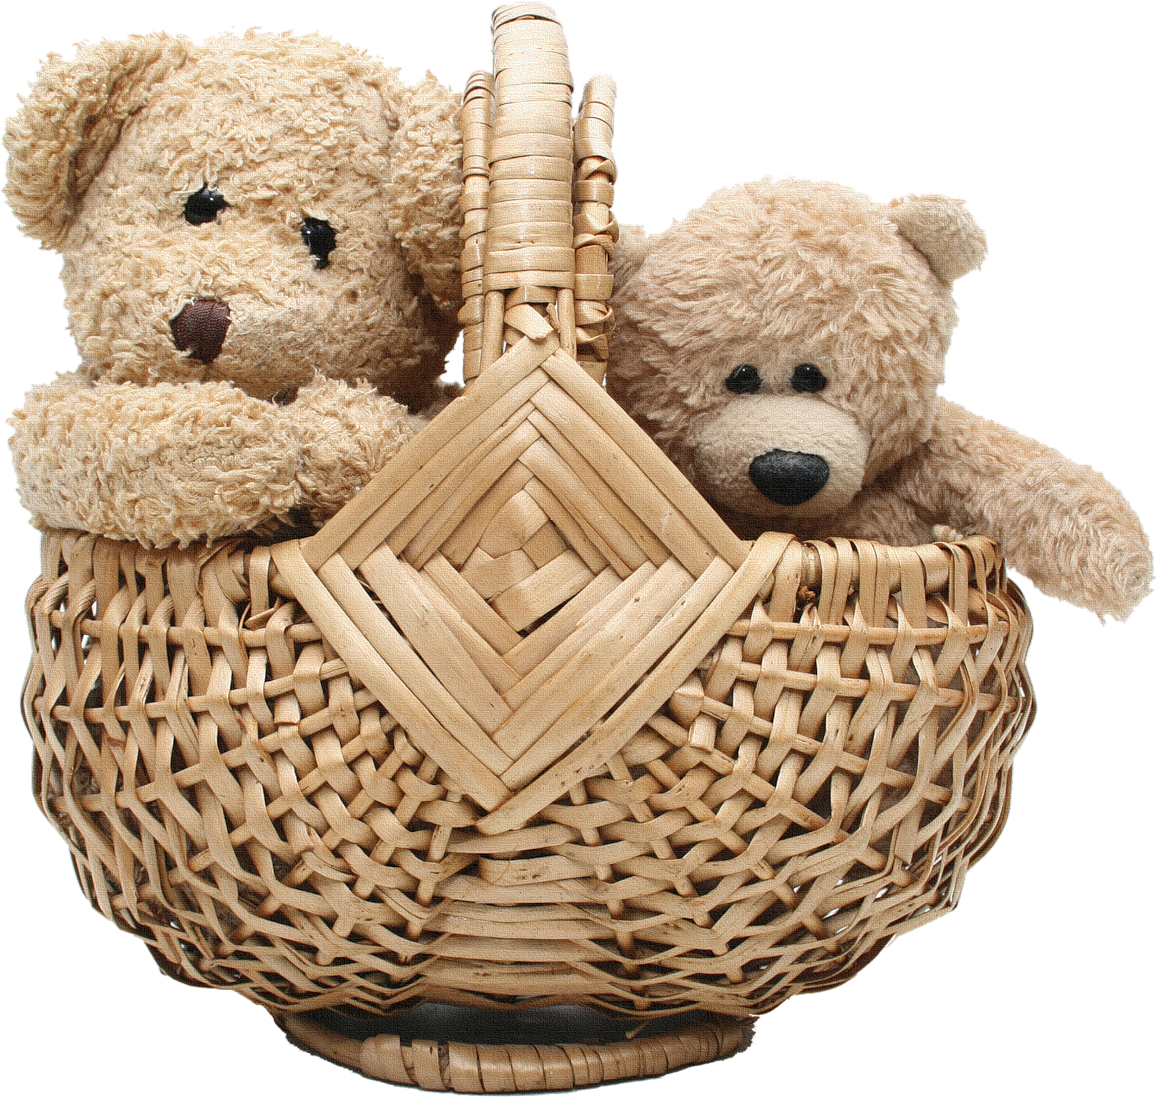 Two Teddy Bear In Basket PNG Image